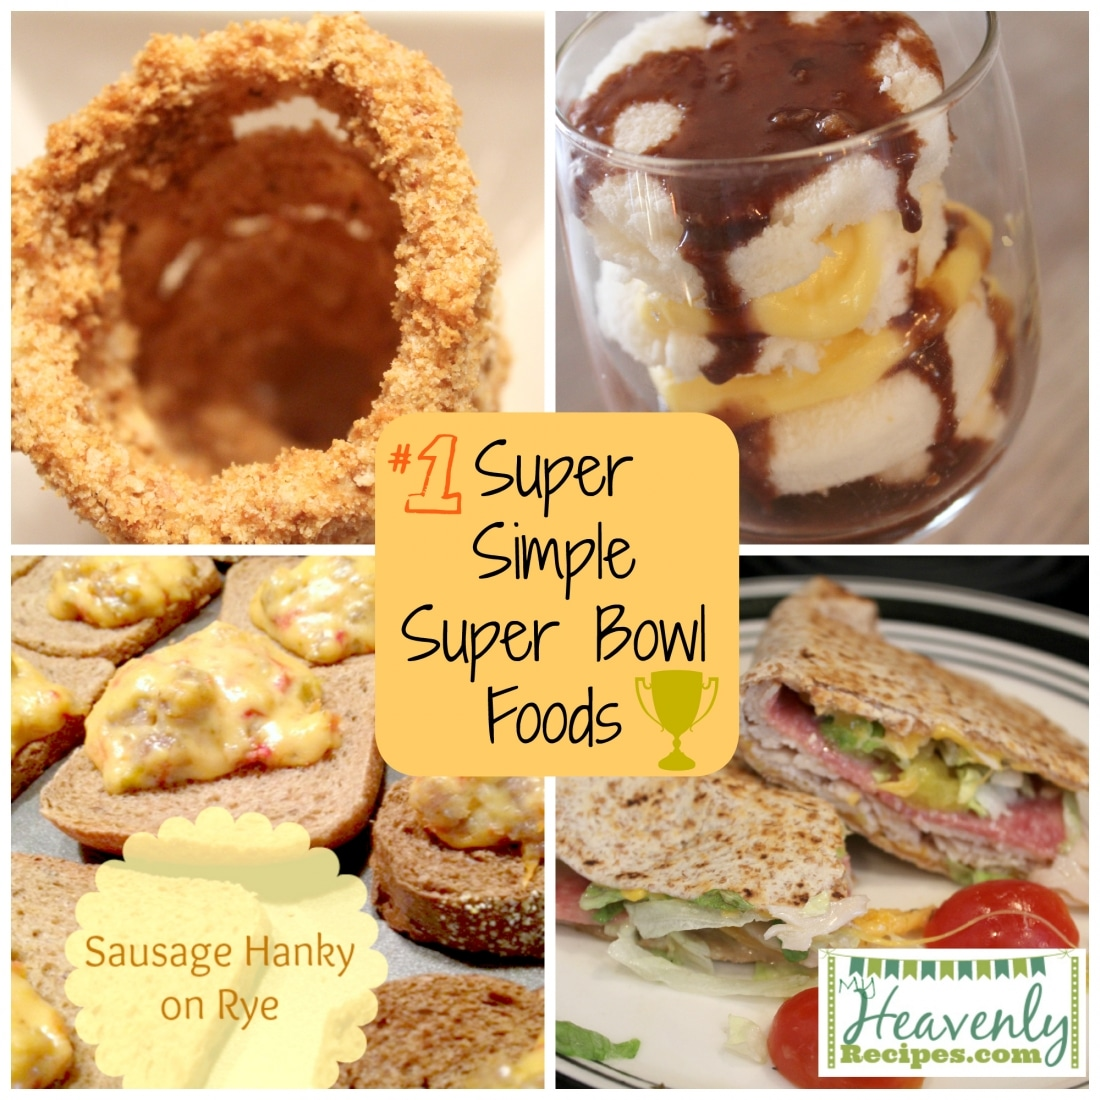 photo collage of 4 simple Super Bowl foods